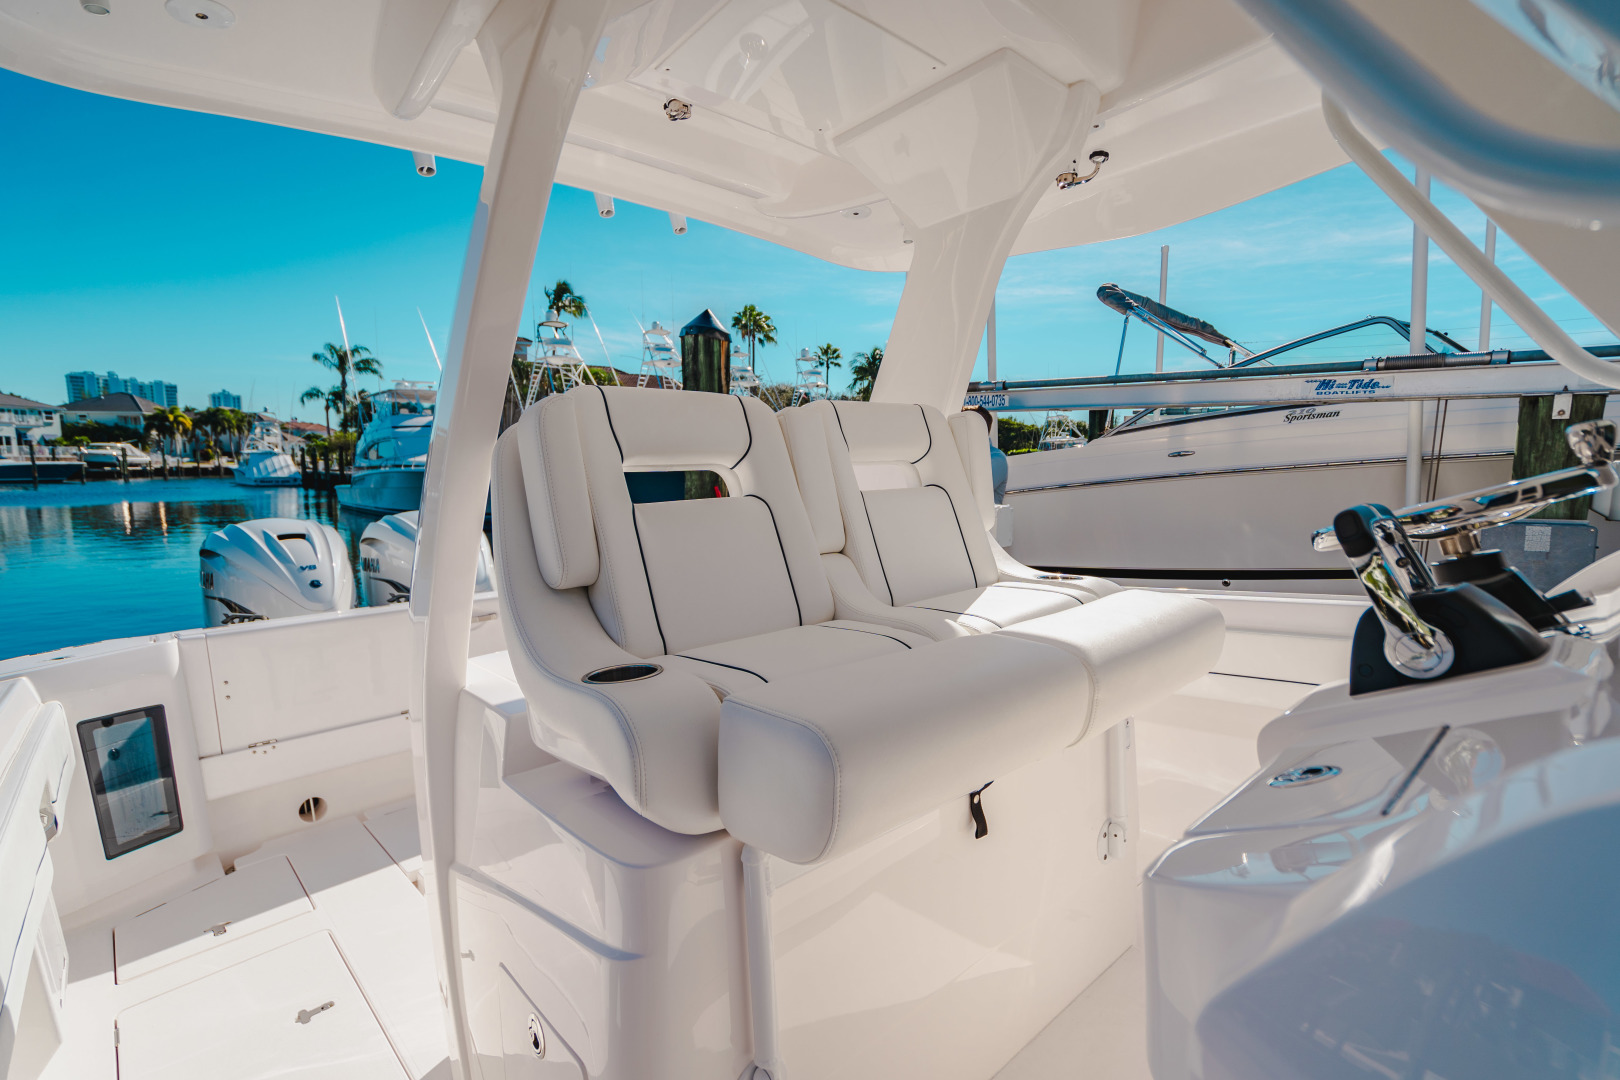 Intrepid-345 Nomad 2020-CORYPHEE North Palm Beach-Florida-United States-Helm Seating-1574576 | Thumbnail